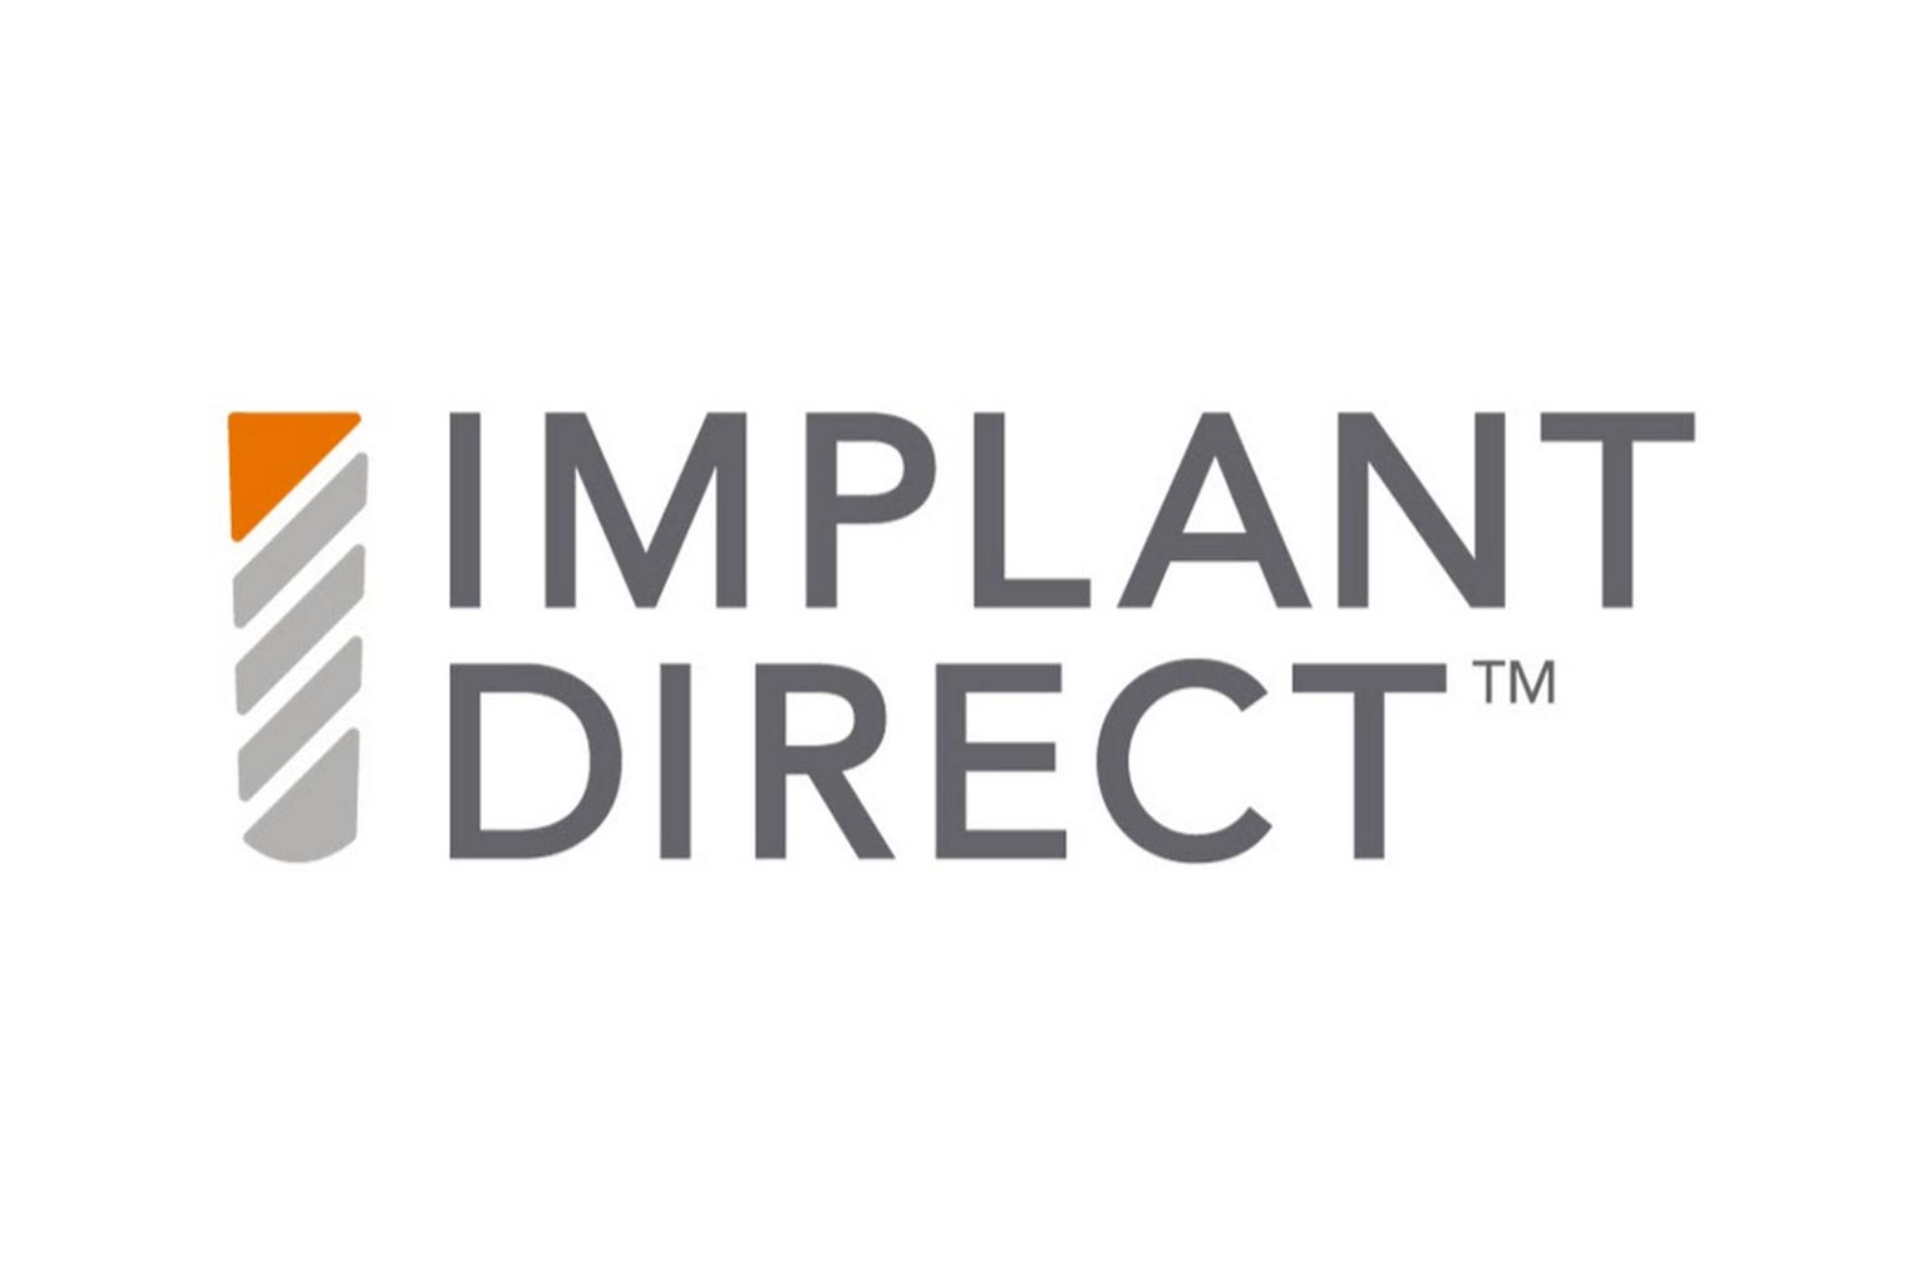 Direct implant insertion